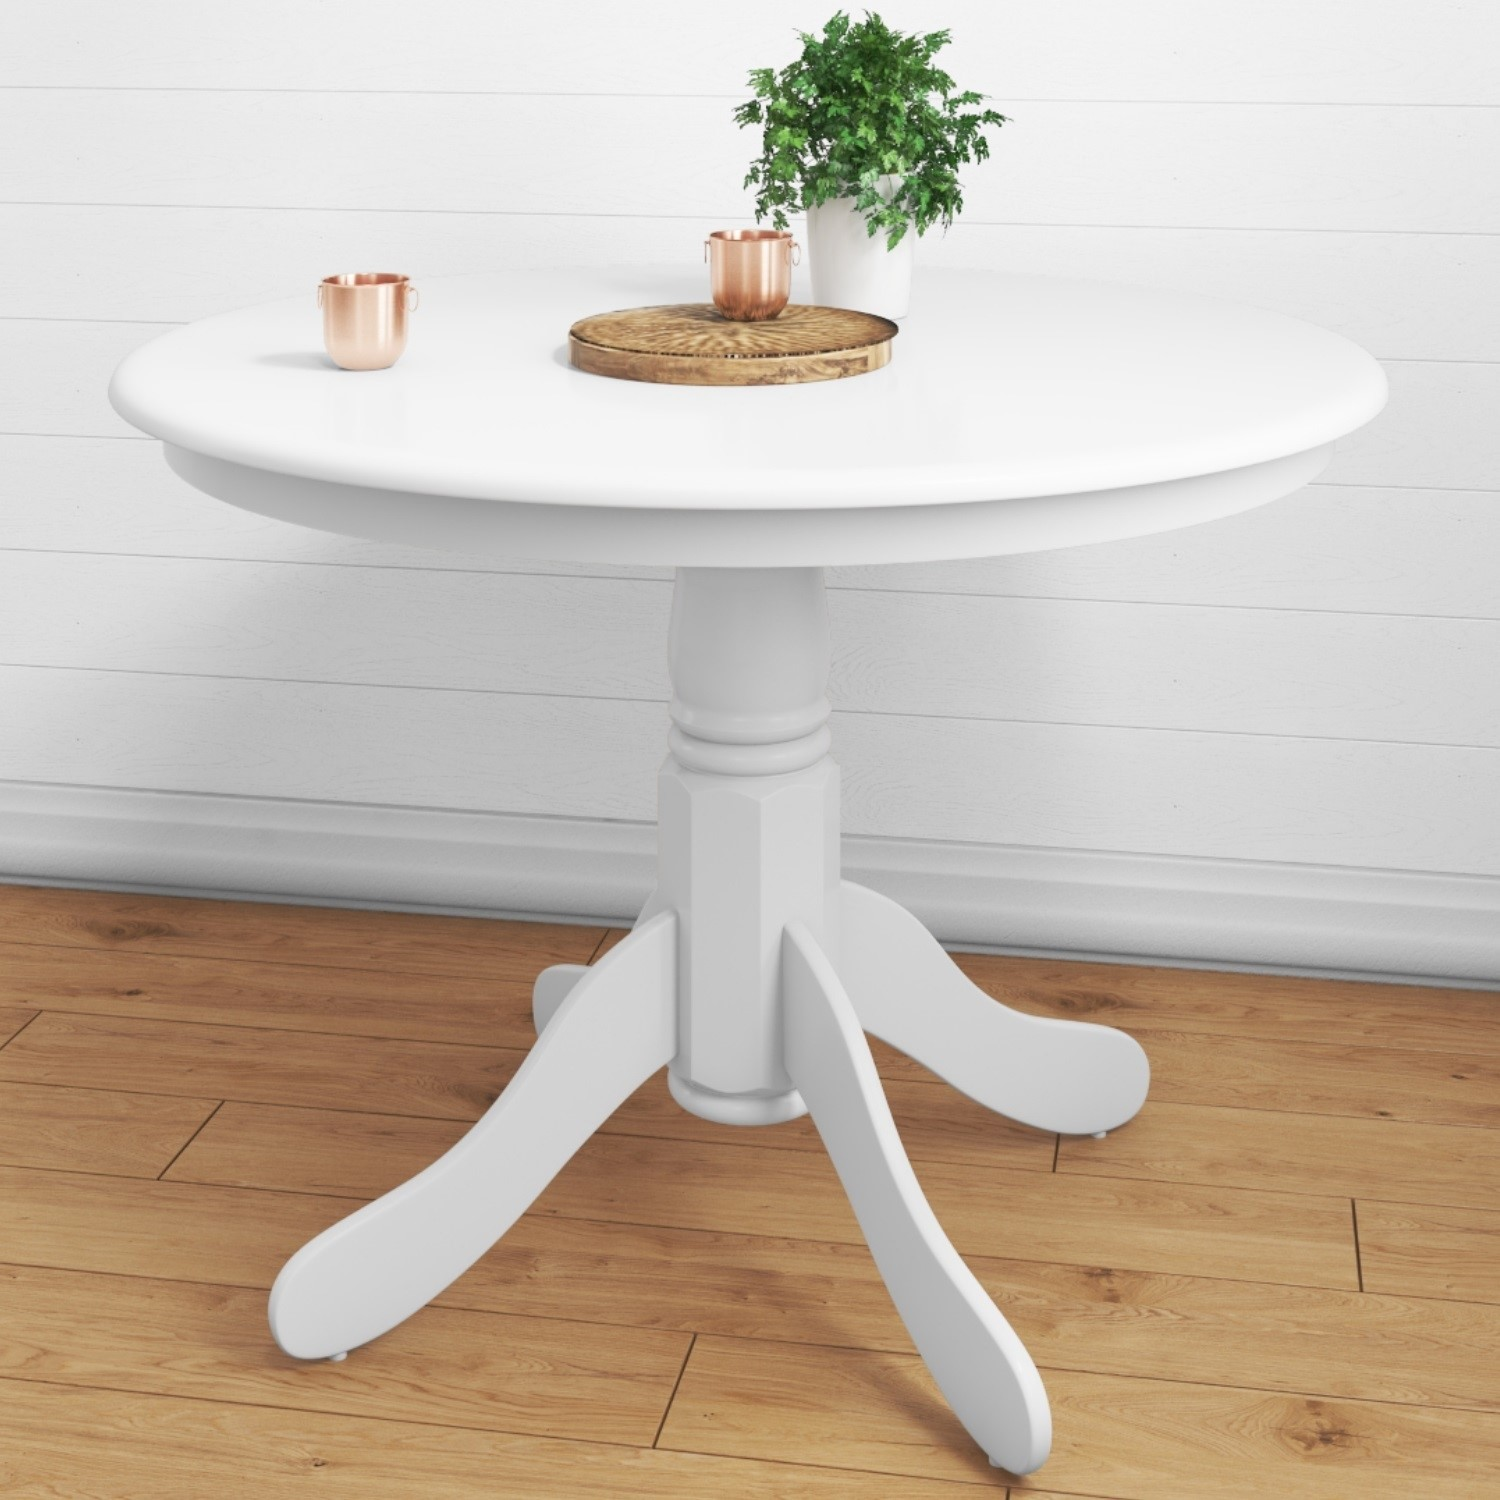 Small round dining table in white   seats 9   rhode island £9.9 ...